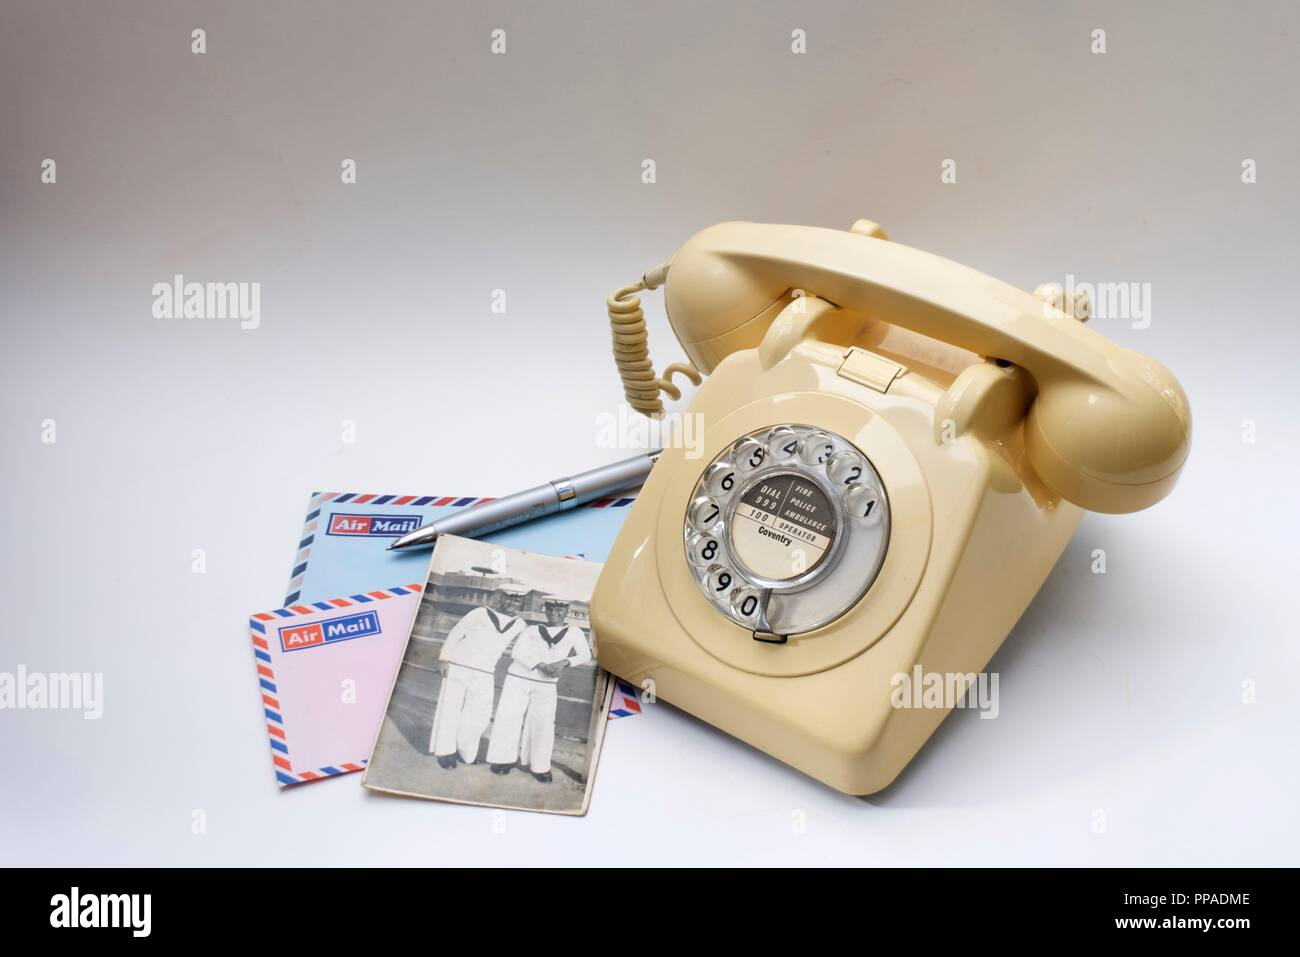 Sell Phone. - Stock Image